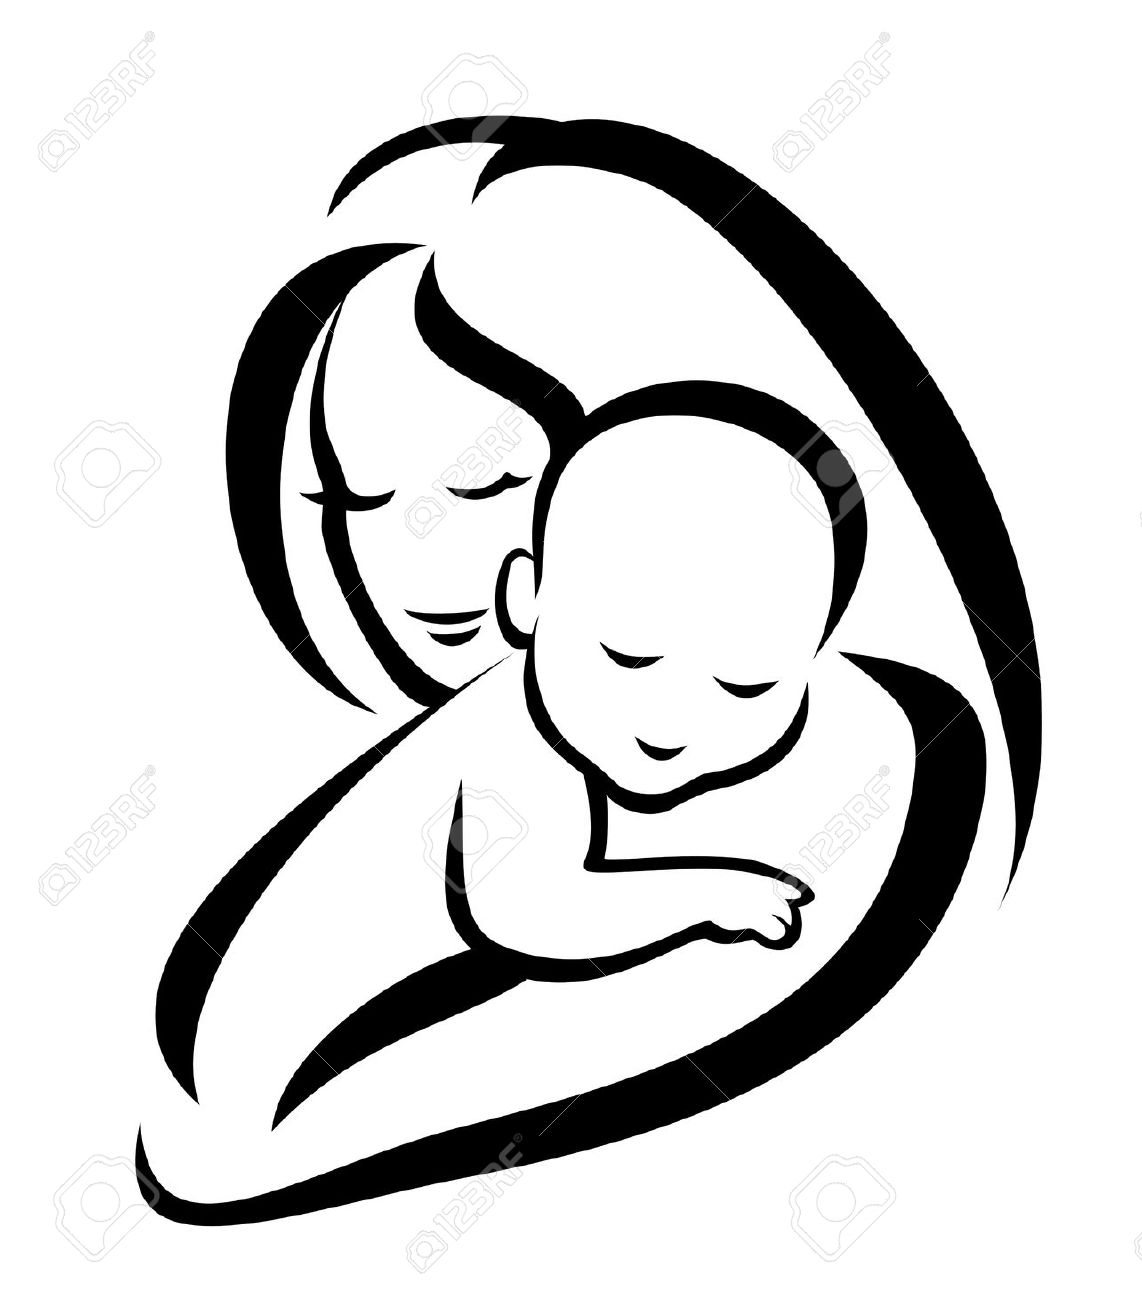 Mother And Baby Clipart Free | Free download best Mother And Baby